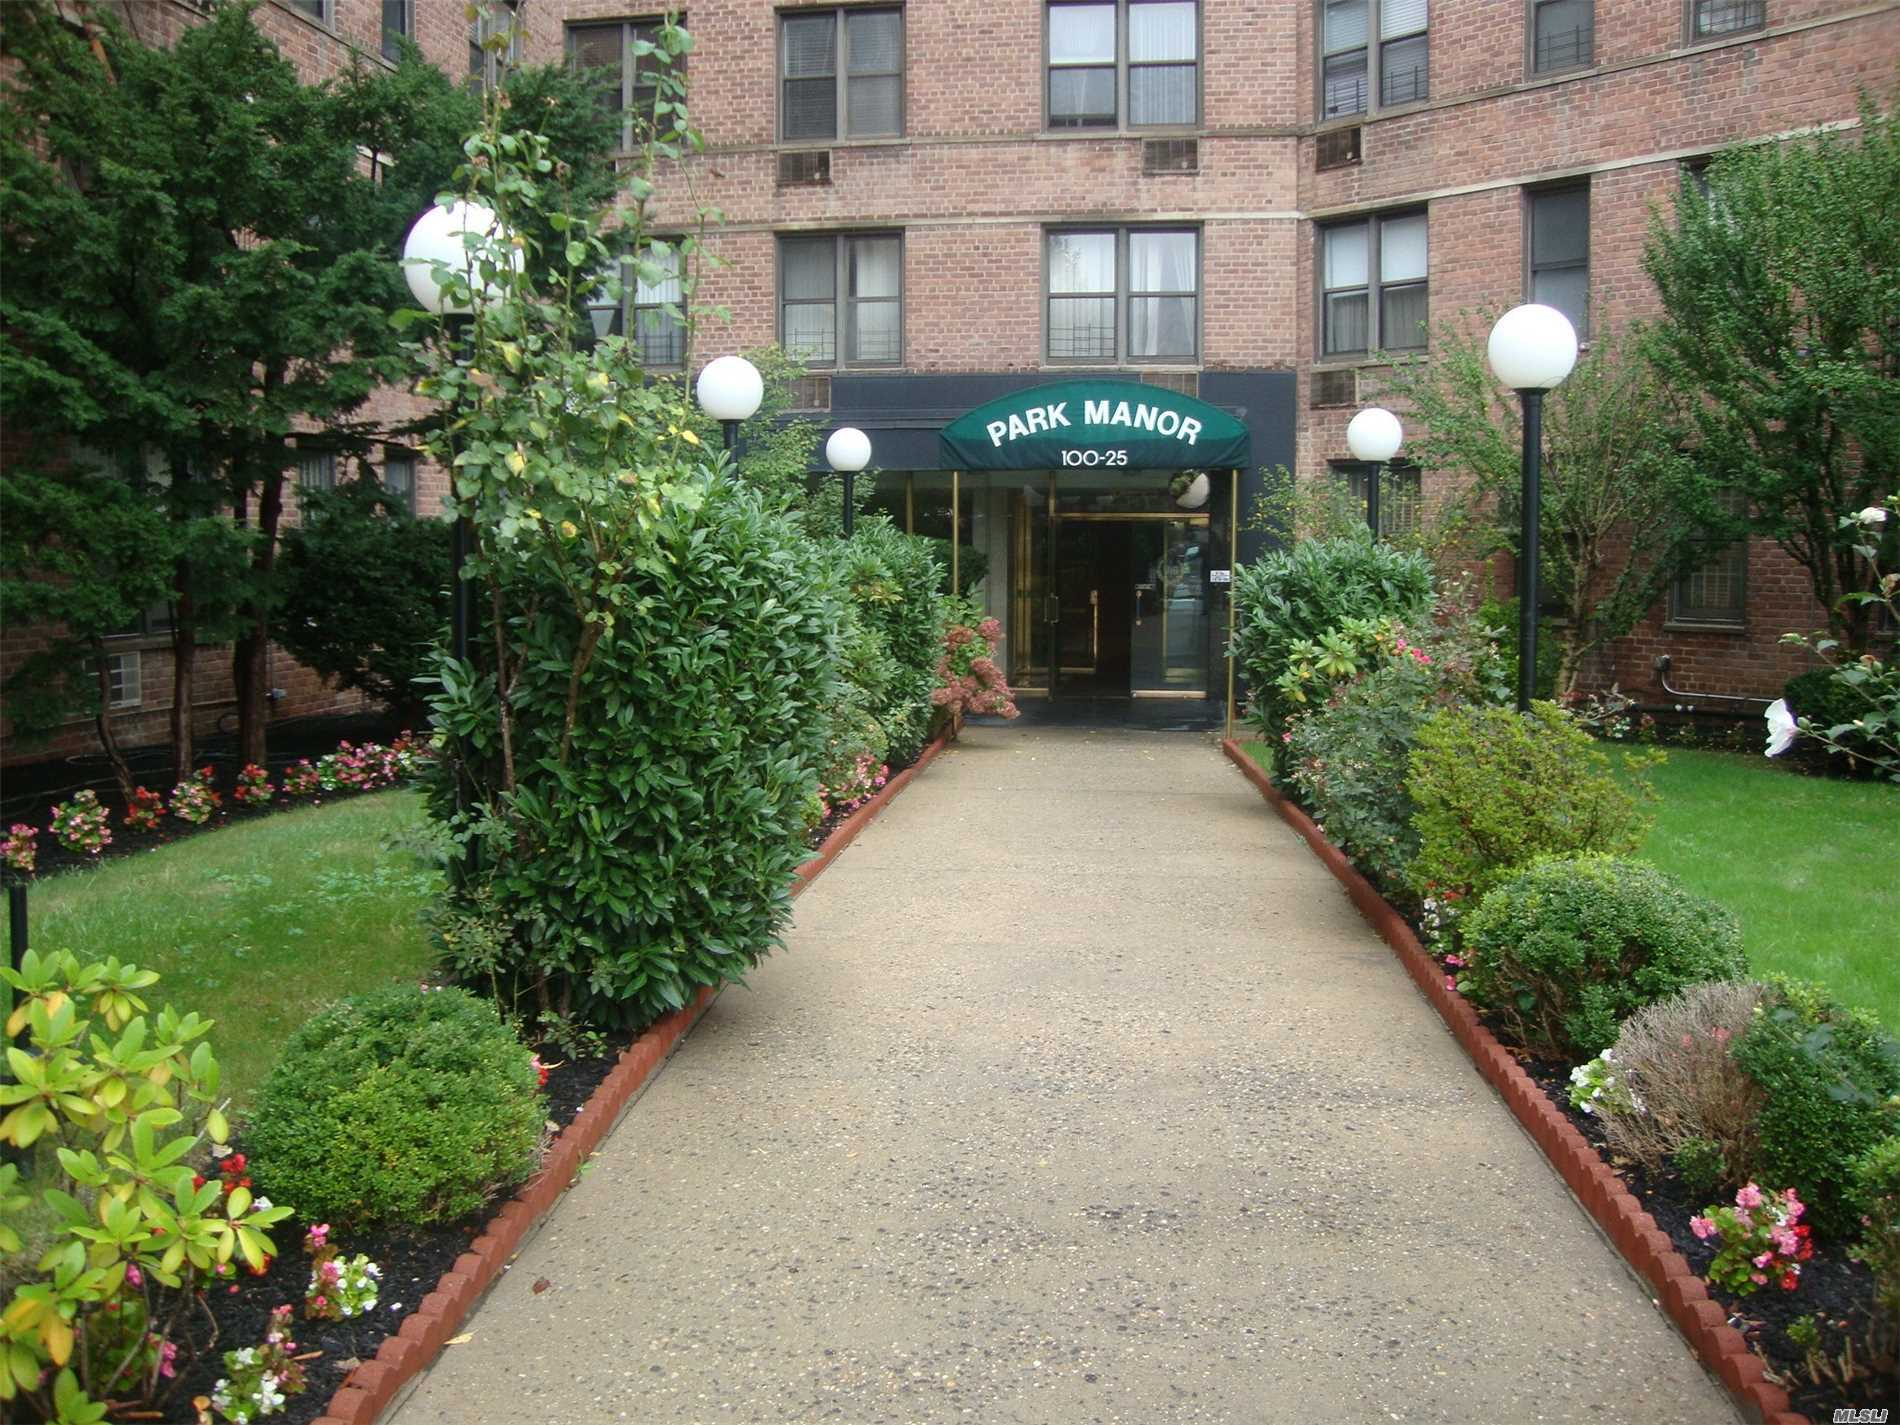 One Br Apt With Living And Dining Rooms, Eik. One Full Bath. Hardwood Floors. The Best Location. Close To Subway, Bus Stop, Shopping Center.